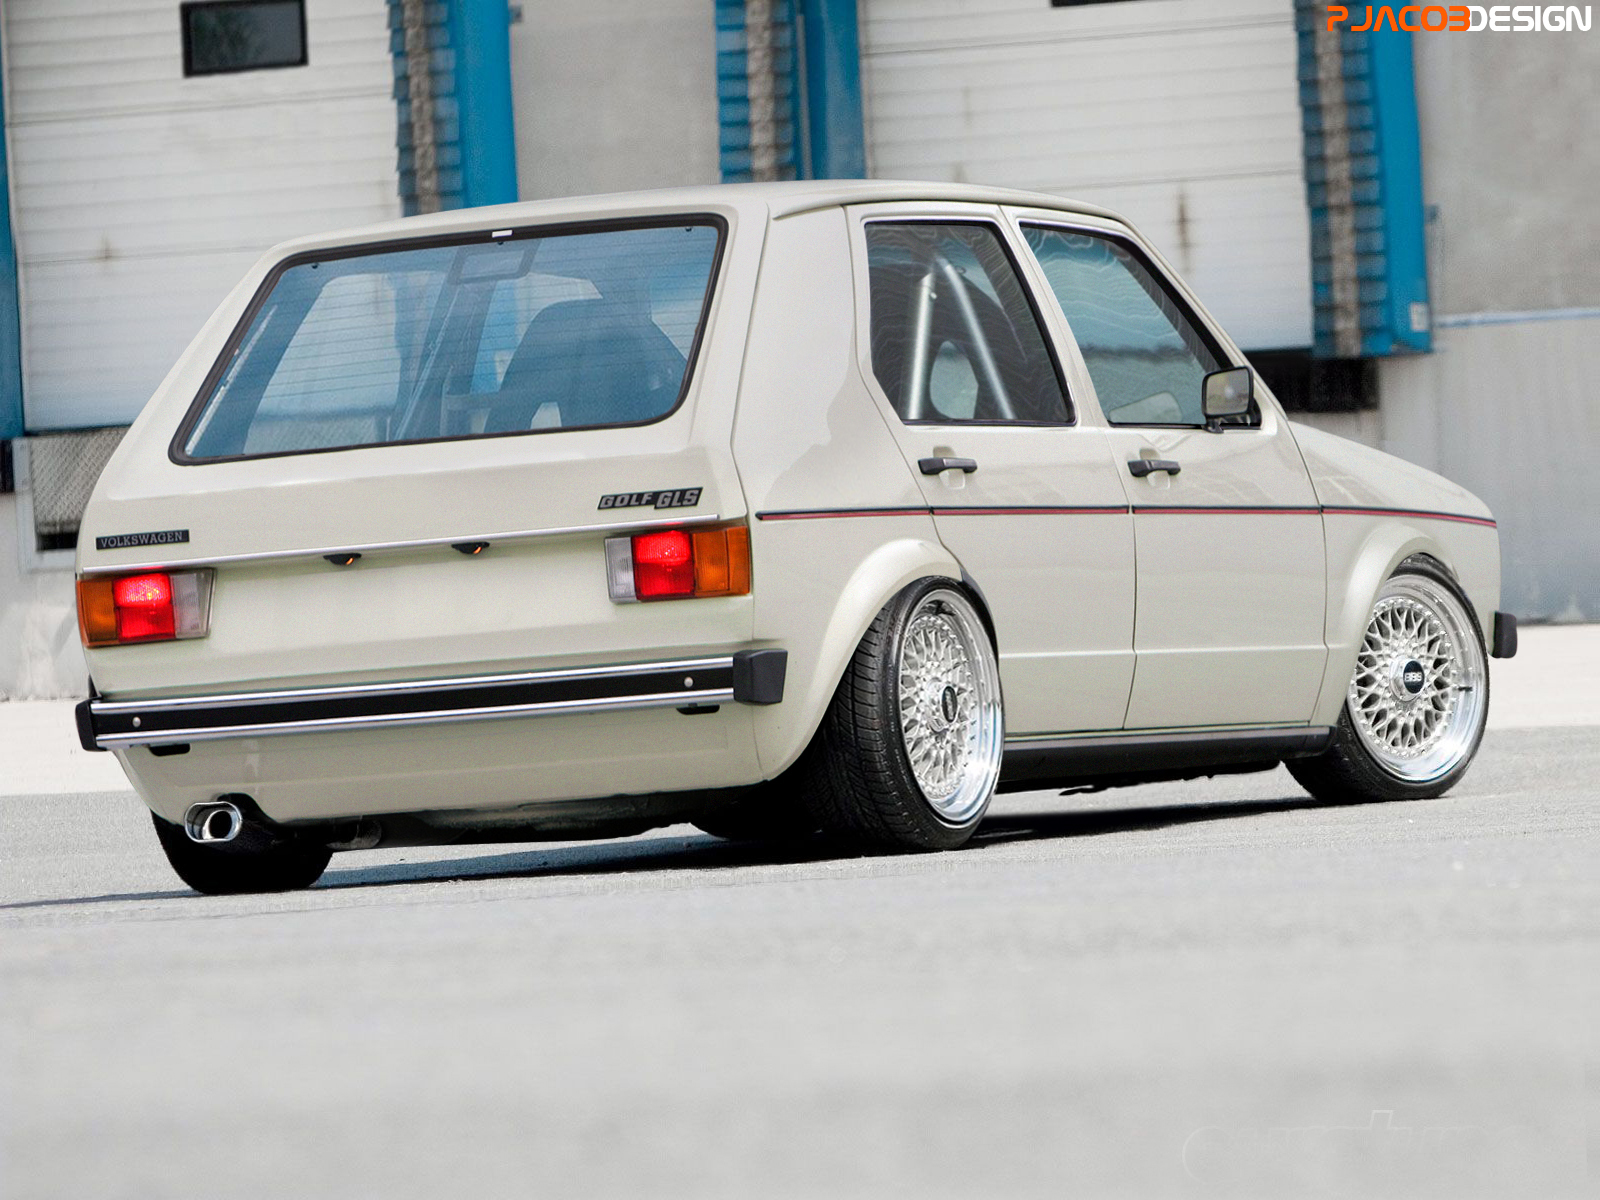 Houtlook Behang Vw Golf Mk1 Wallpaper - Pagina 3 Van 3 - Downloadwallpaper.org